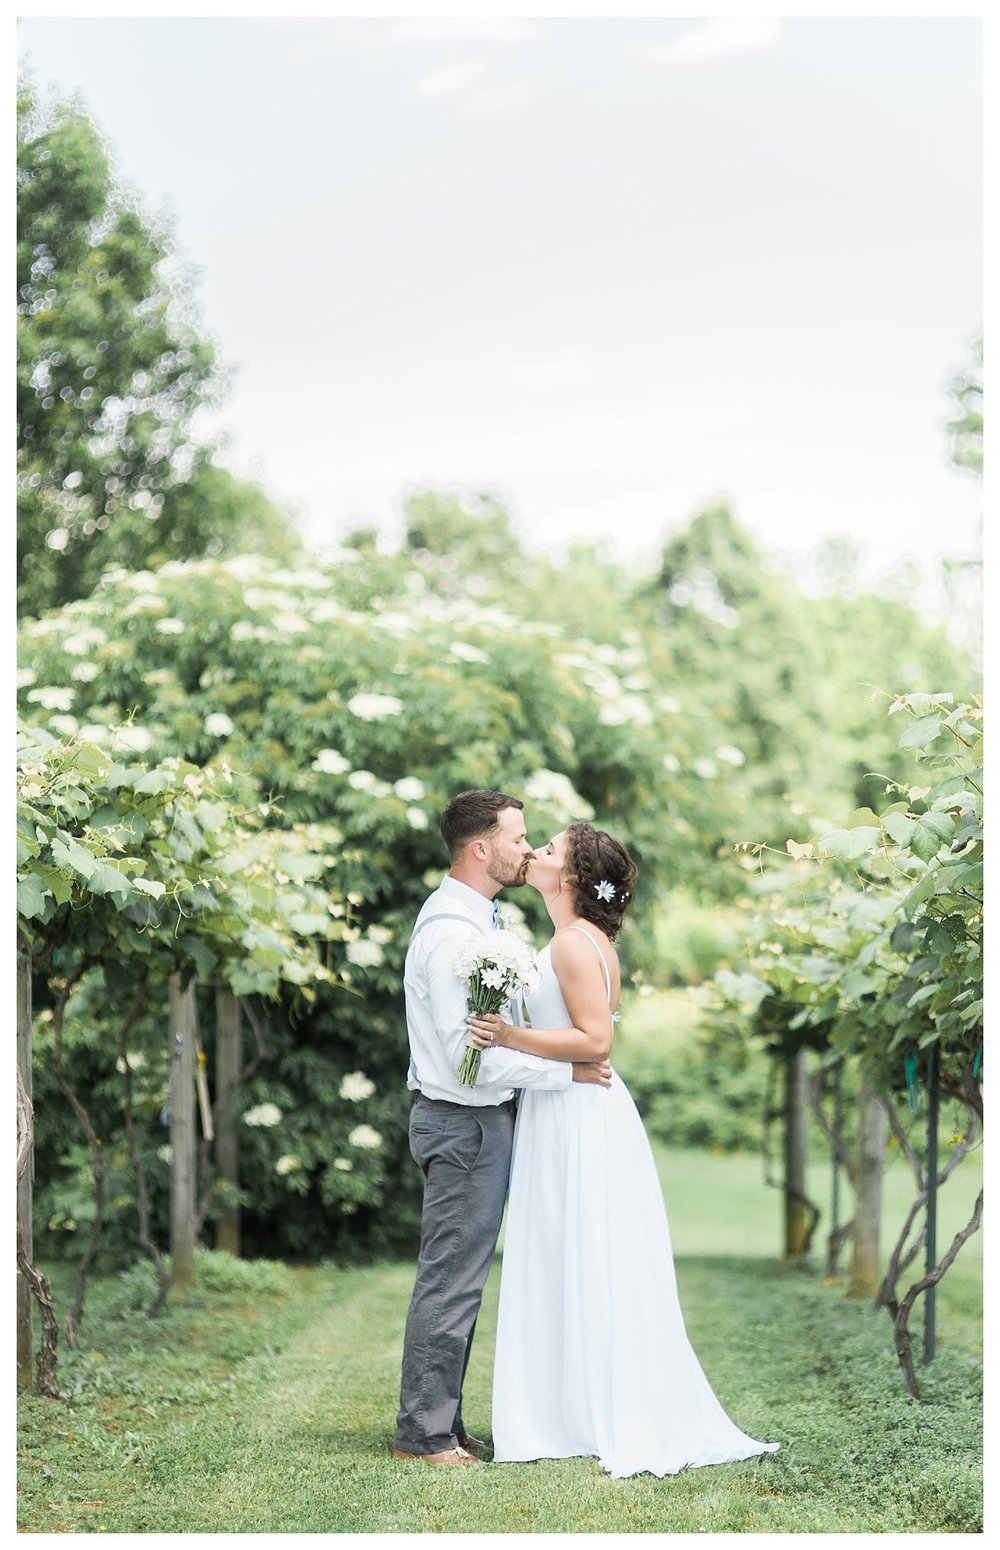 everleigh-photography.-cincinnati-wedding-photographer-at-the-barn-winery-26